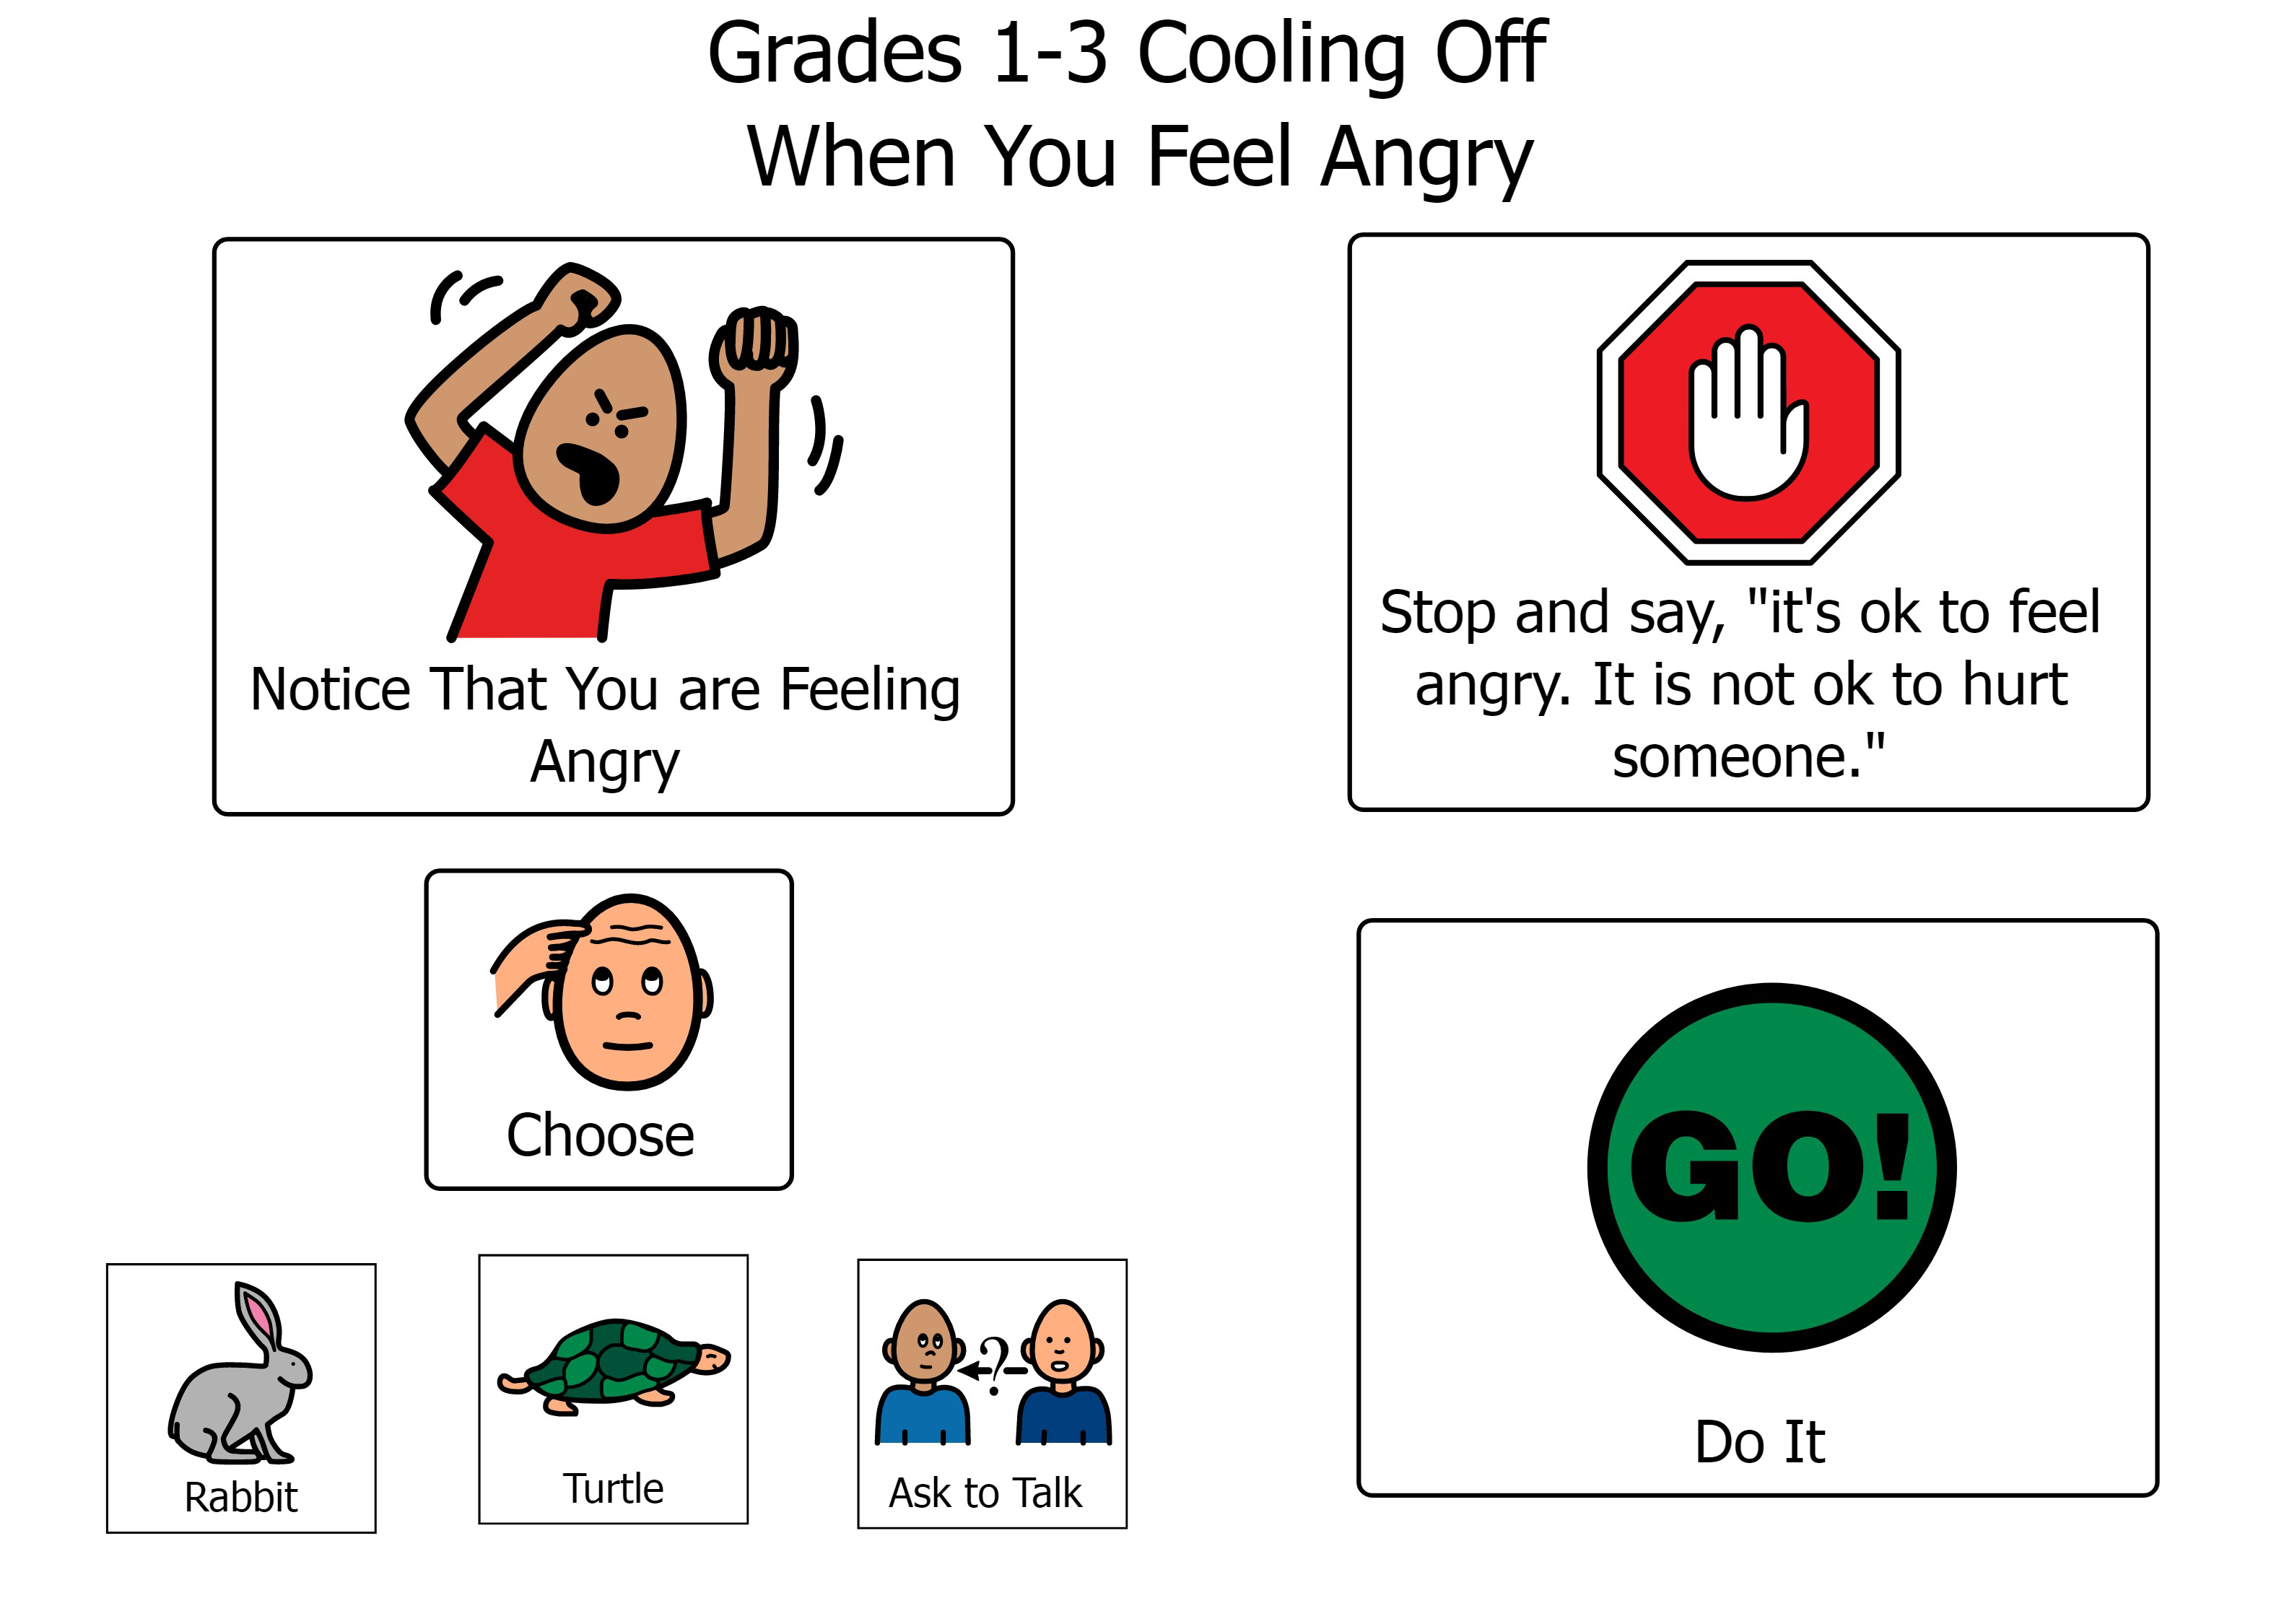 S'cool Moves Grades 1-3 Cooling Off When You Feel Angry